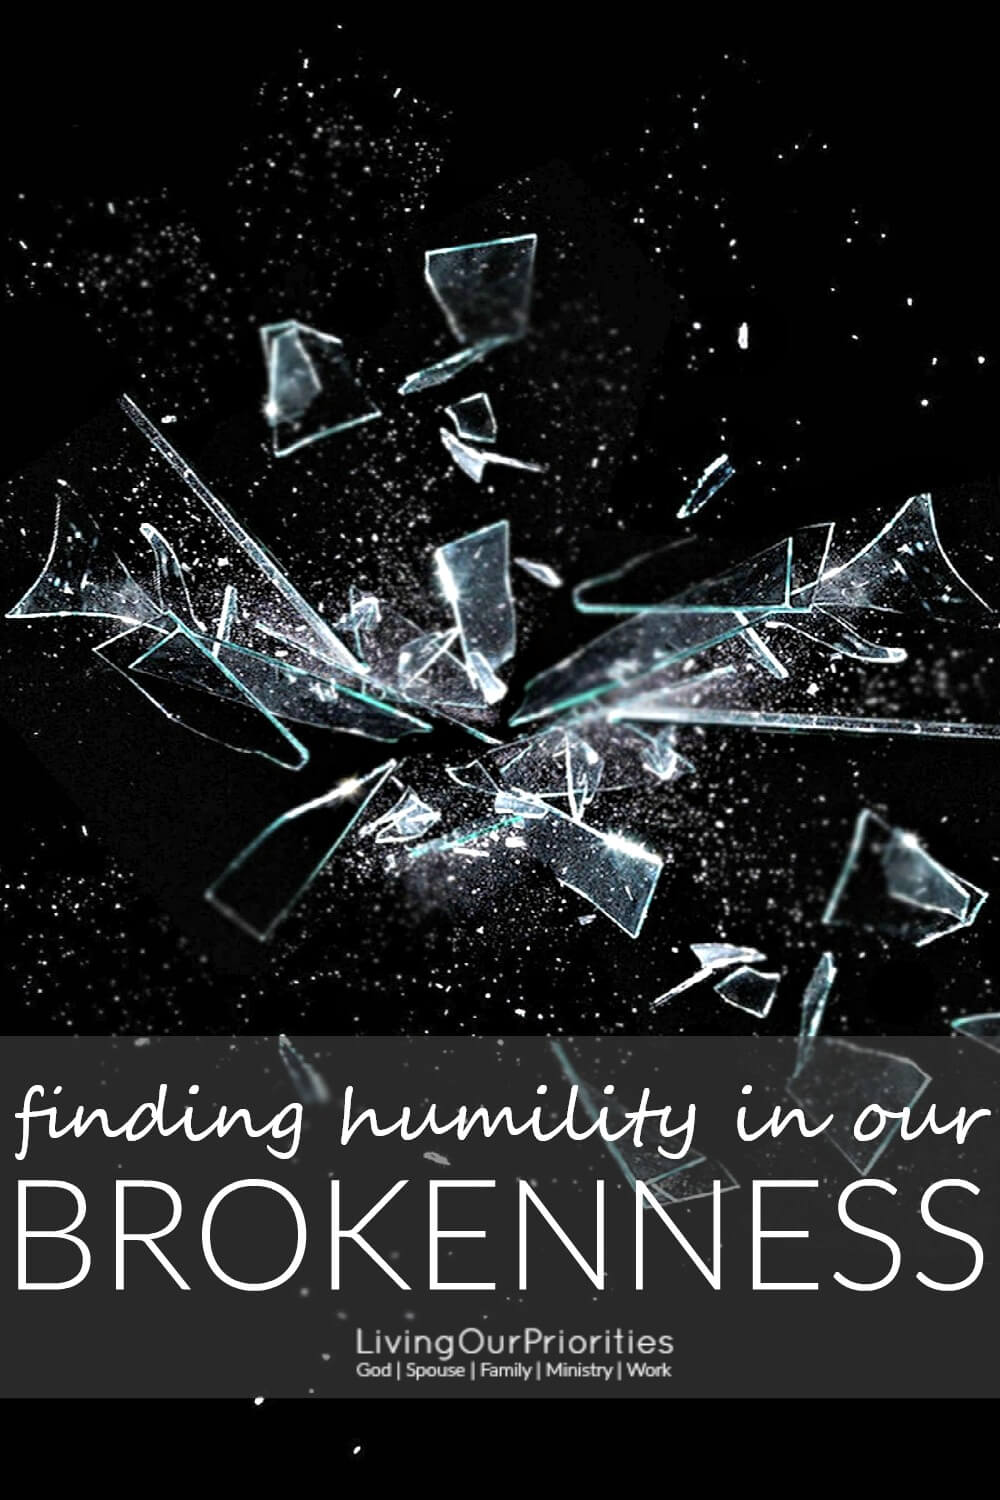 Have you come to a place of complete brokenness; a place where you feel lost, lonely, broke and emotionally drained? Brokenness can lead to healing, restoration, and peace; if we embrace the moment as an opportunity to draw closer to God. And it is through this process where we grow in humility.